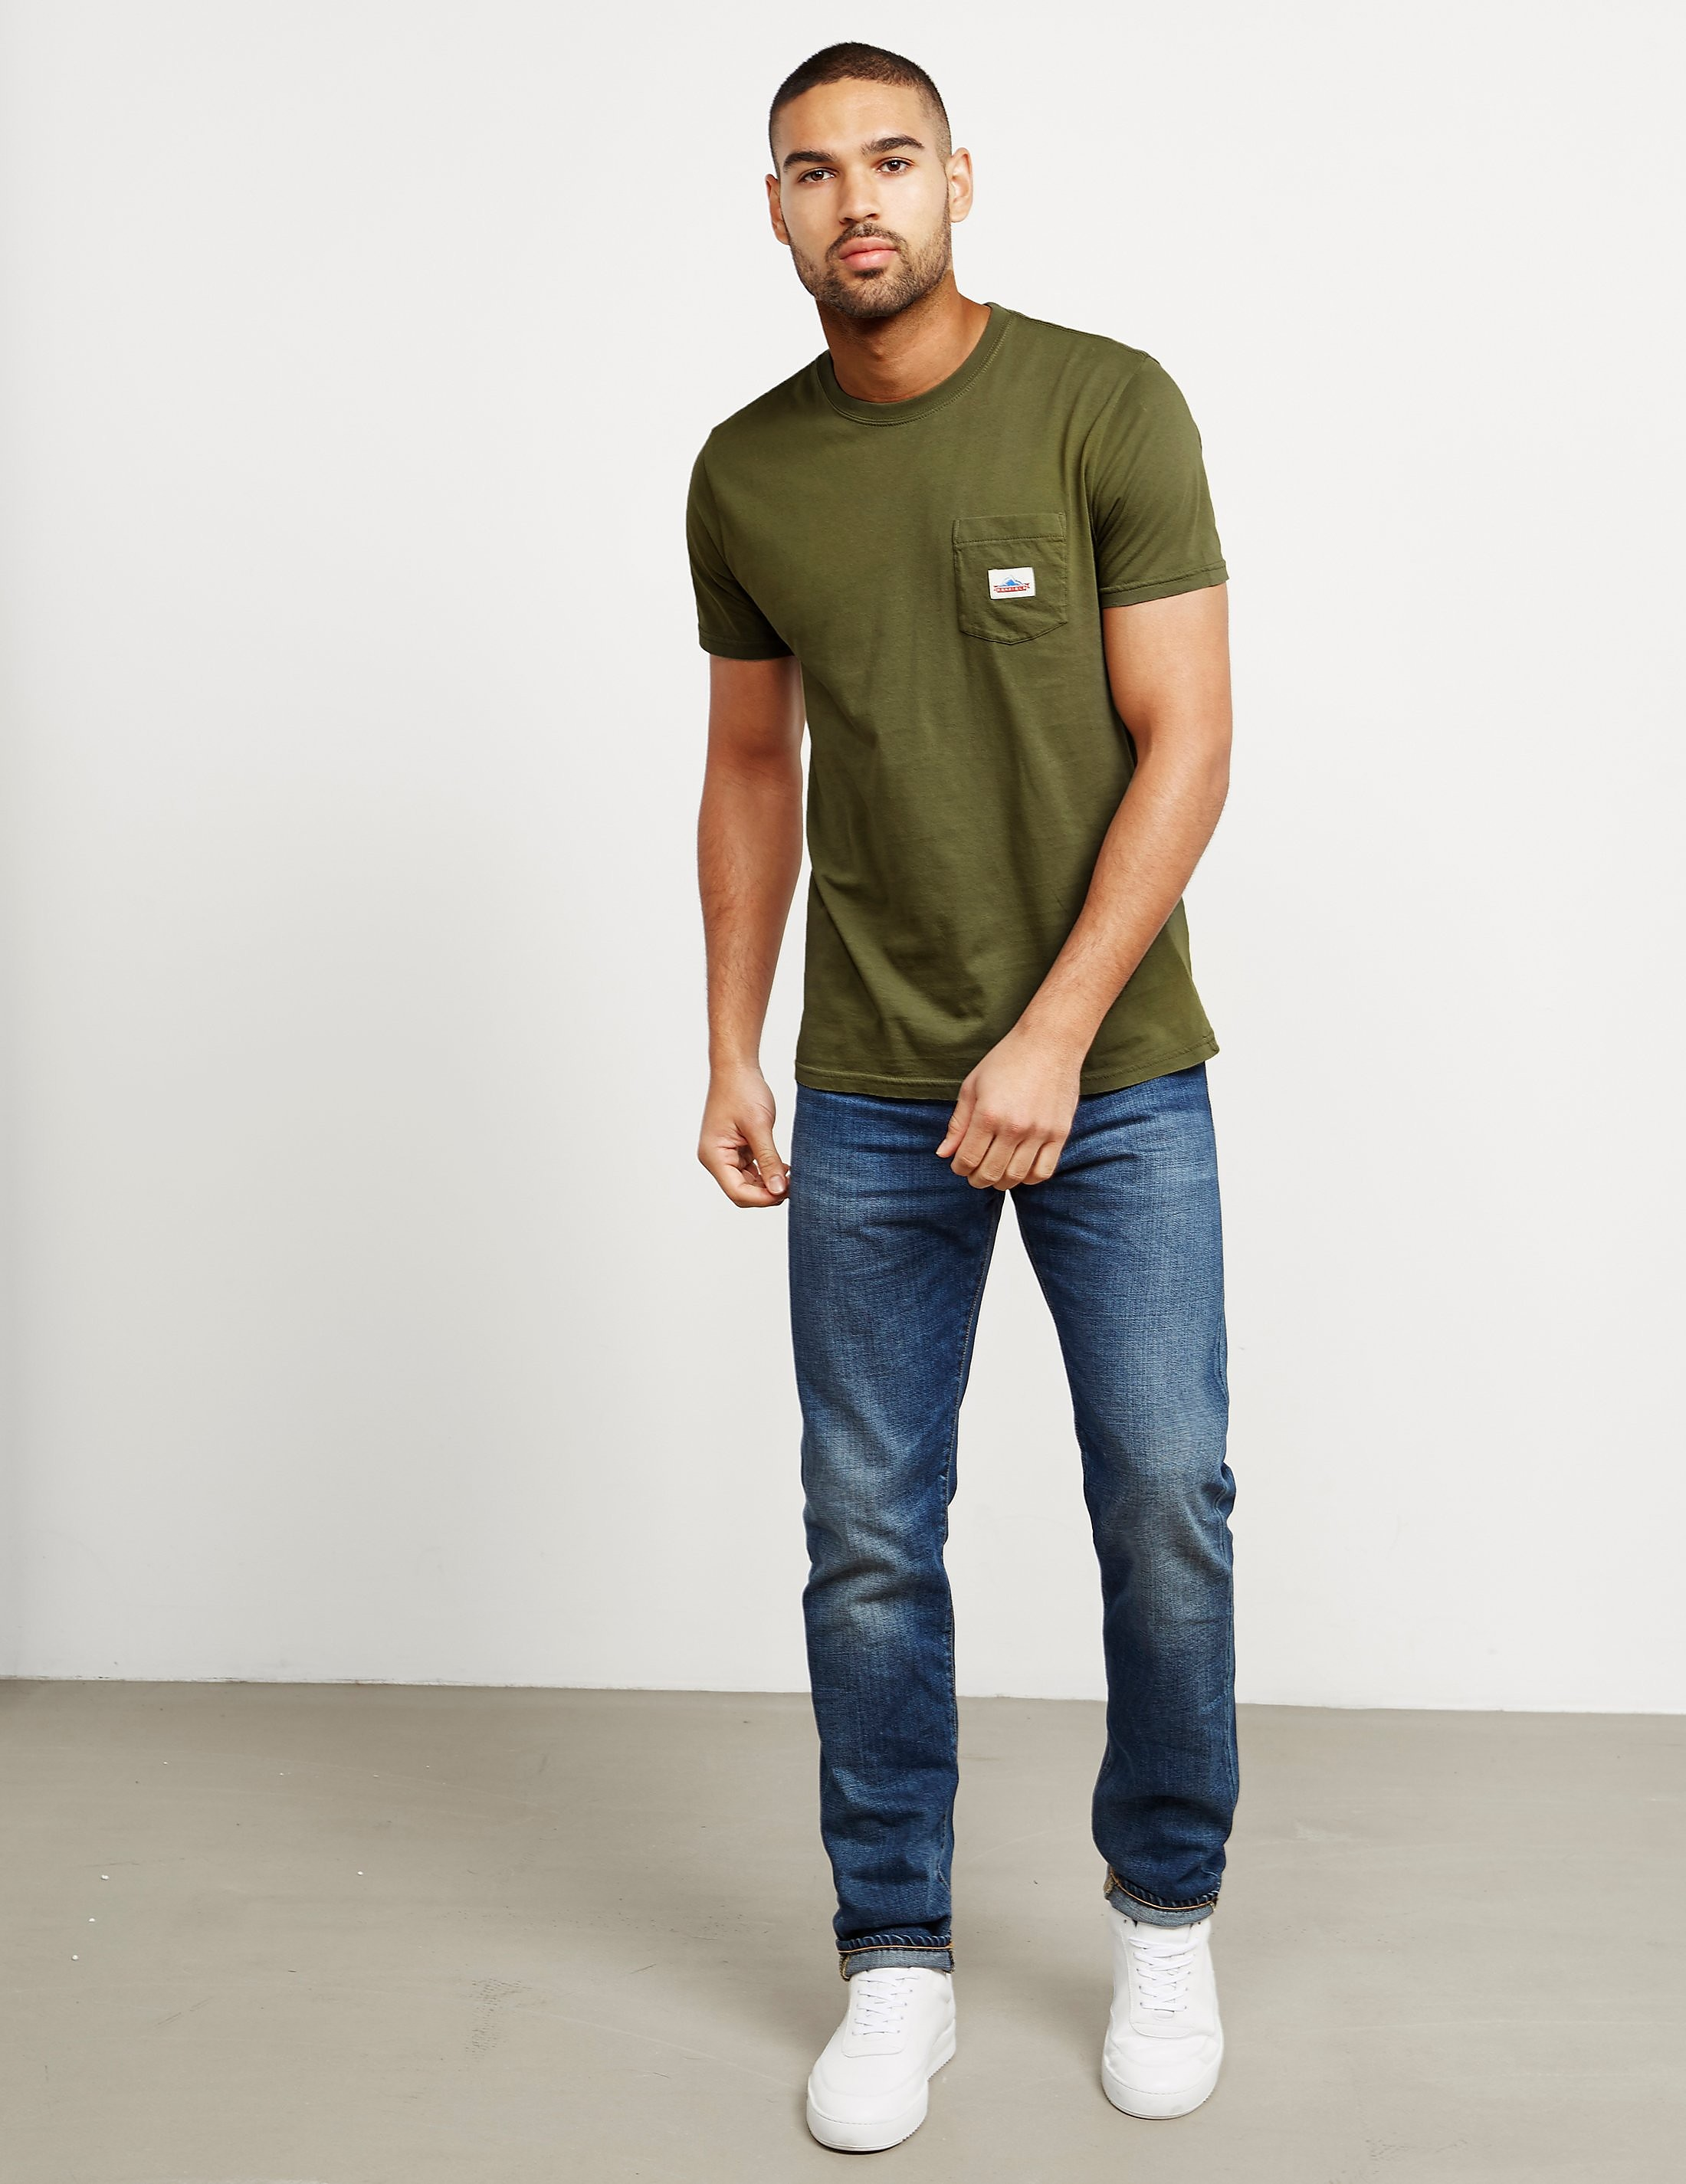 Penfield Pocket Short Sleeve T-Shirt